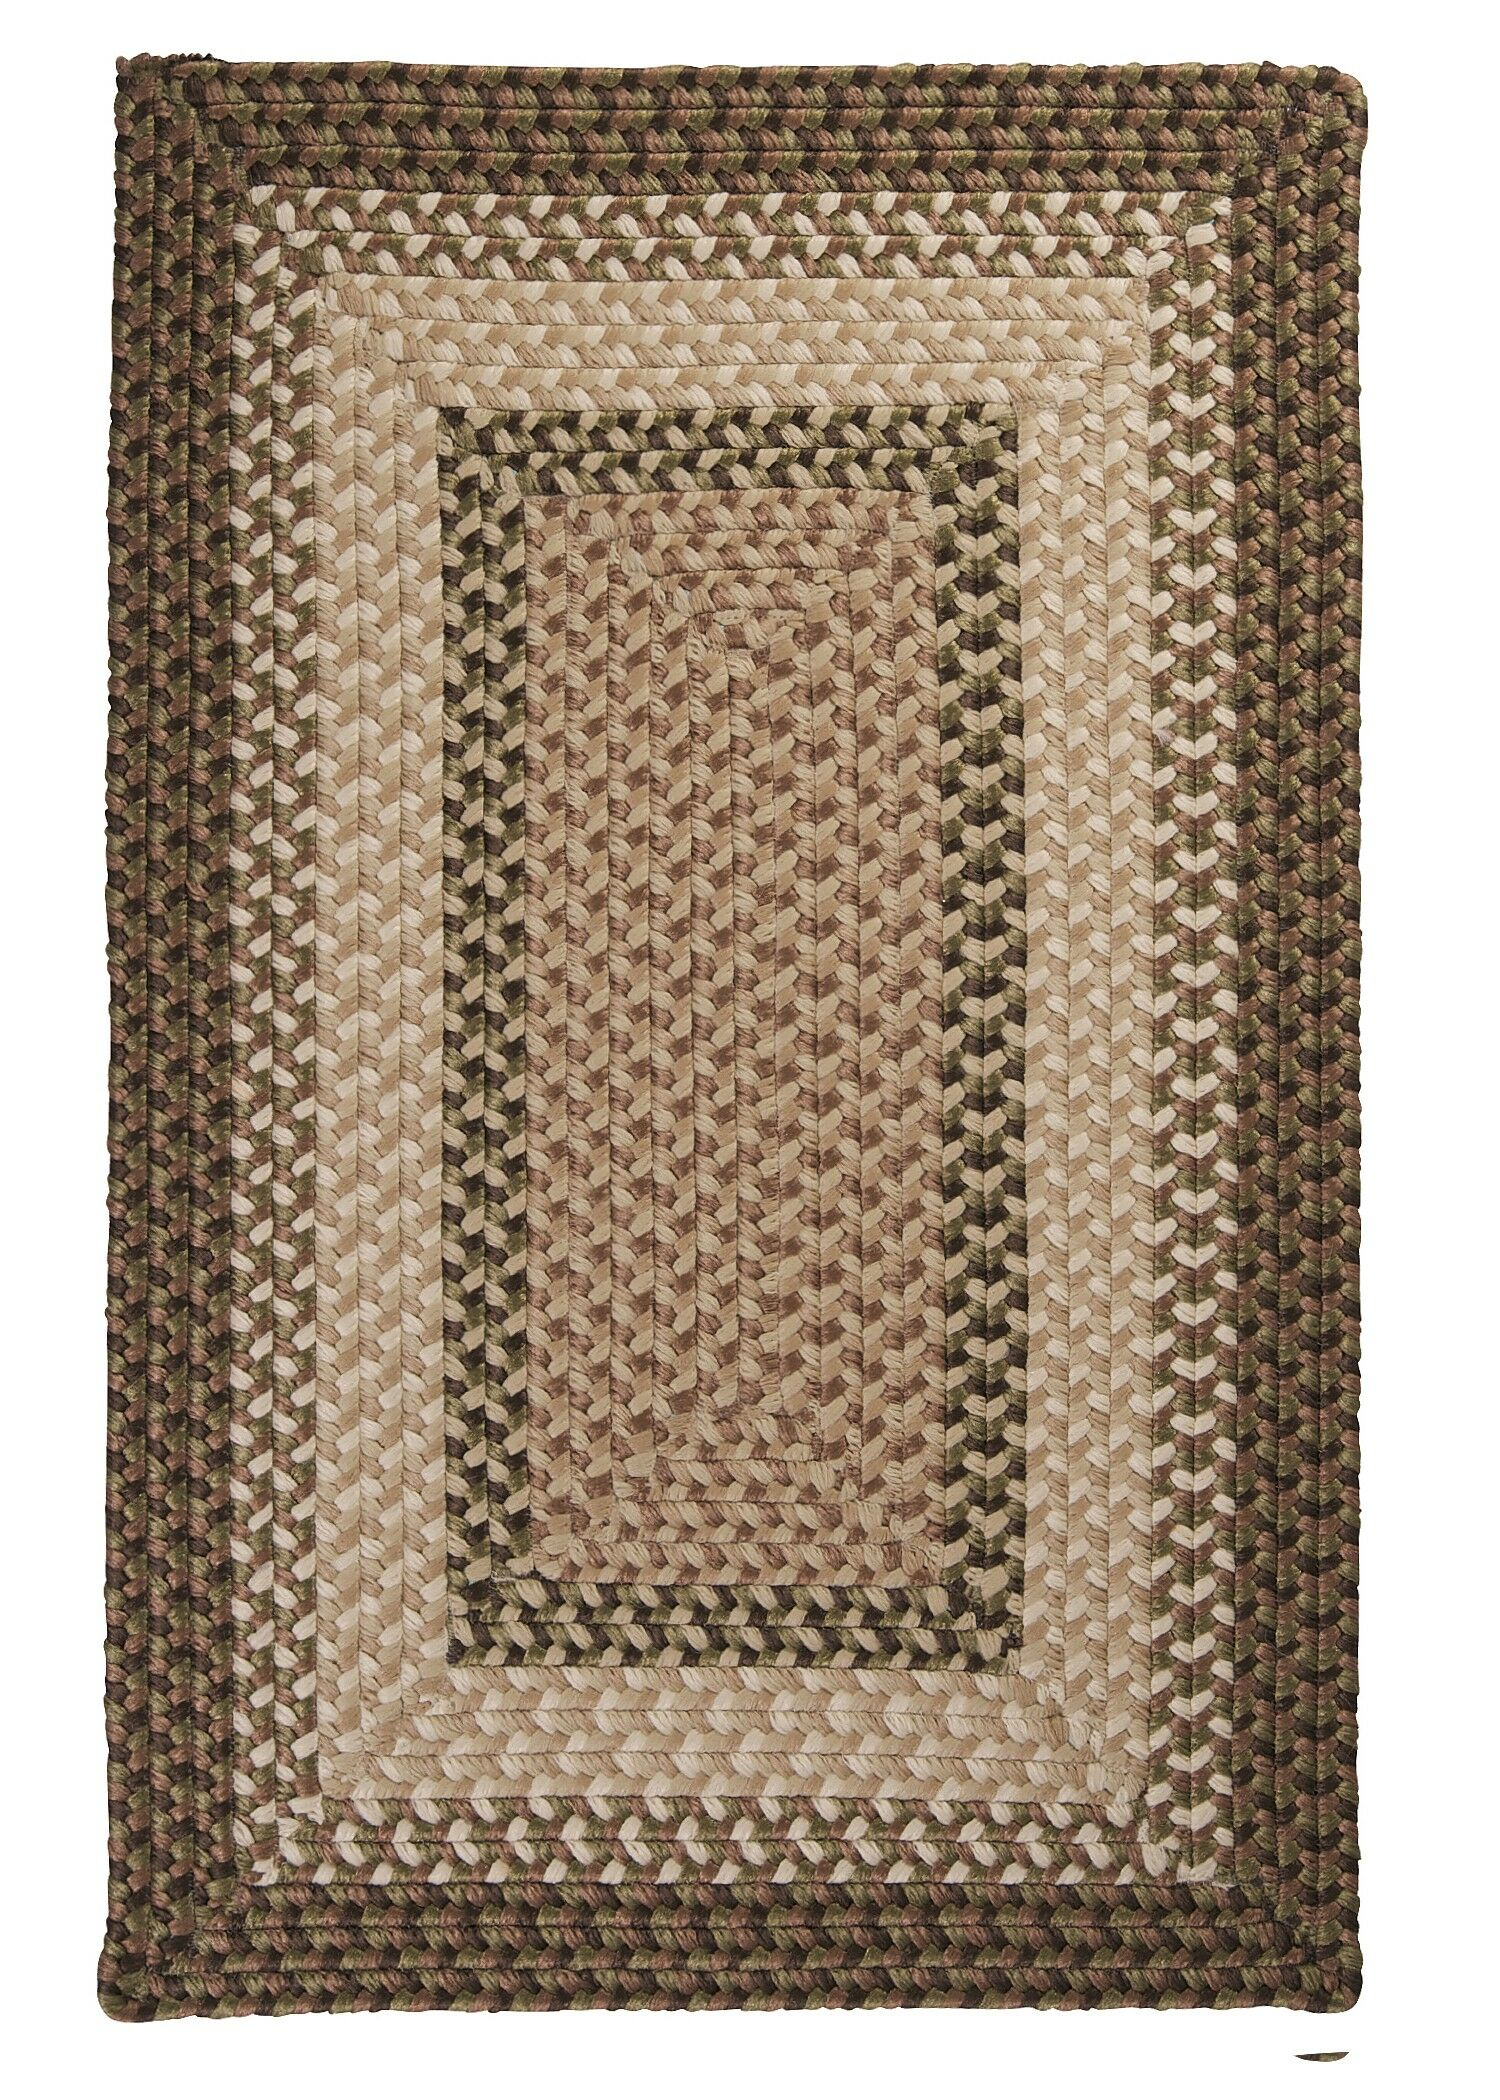 Tiburon Spruce Green Braided Indoor/Outdoor Area Rug Rug Size: Square 6'